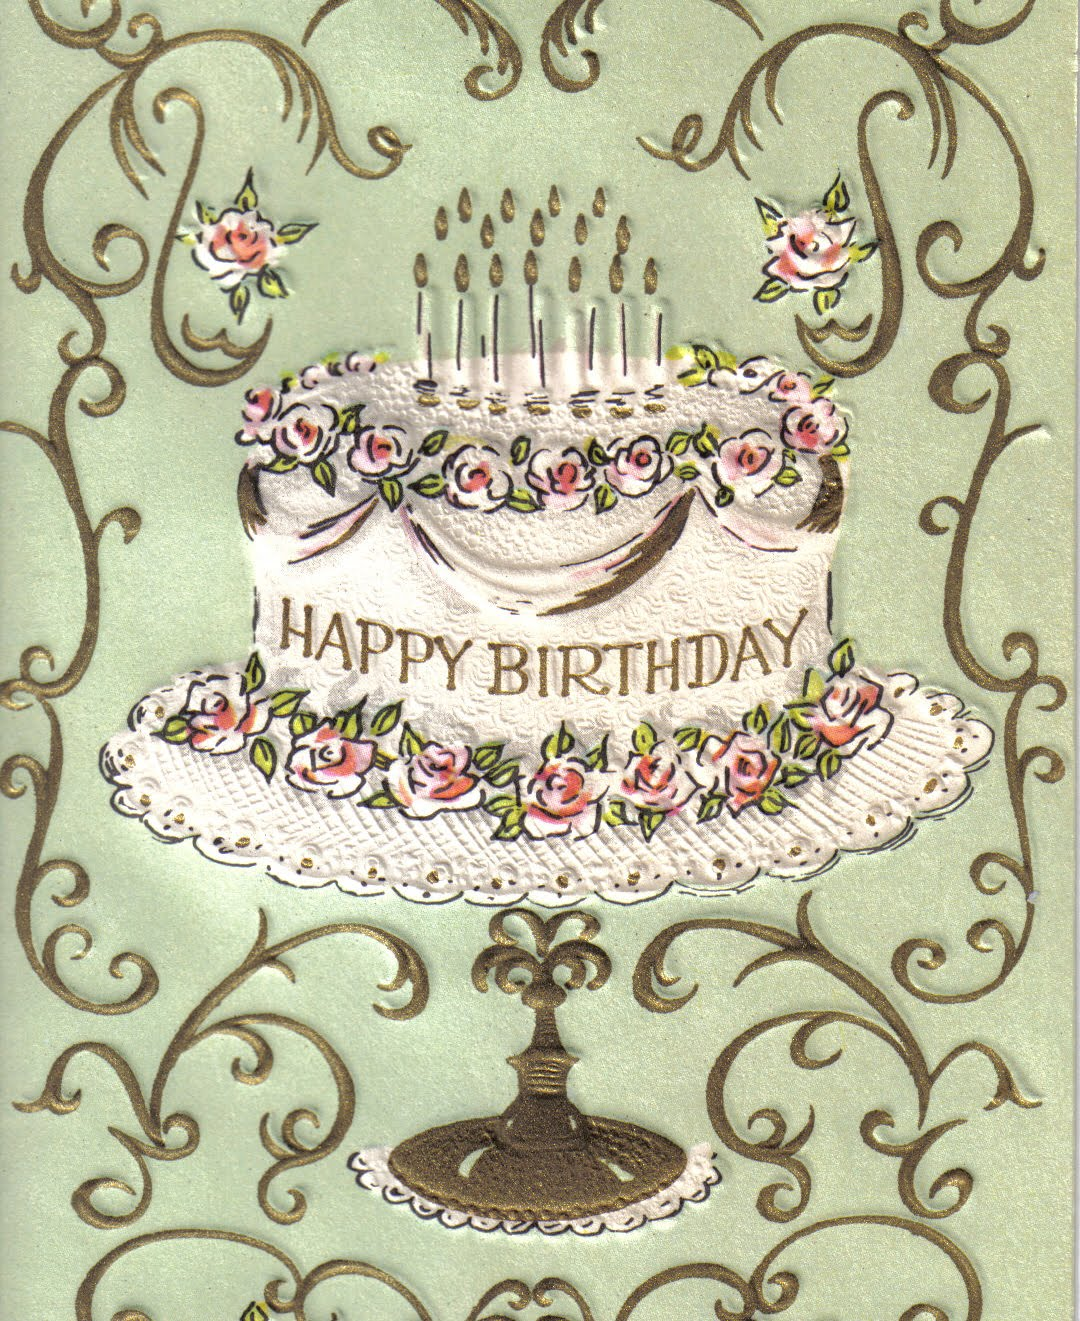 Club Vintage Fashions The Blog Is One Year Old Today